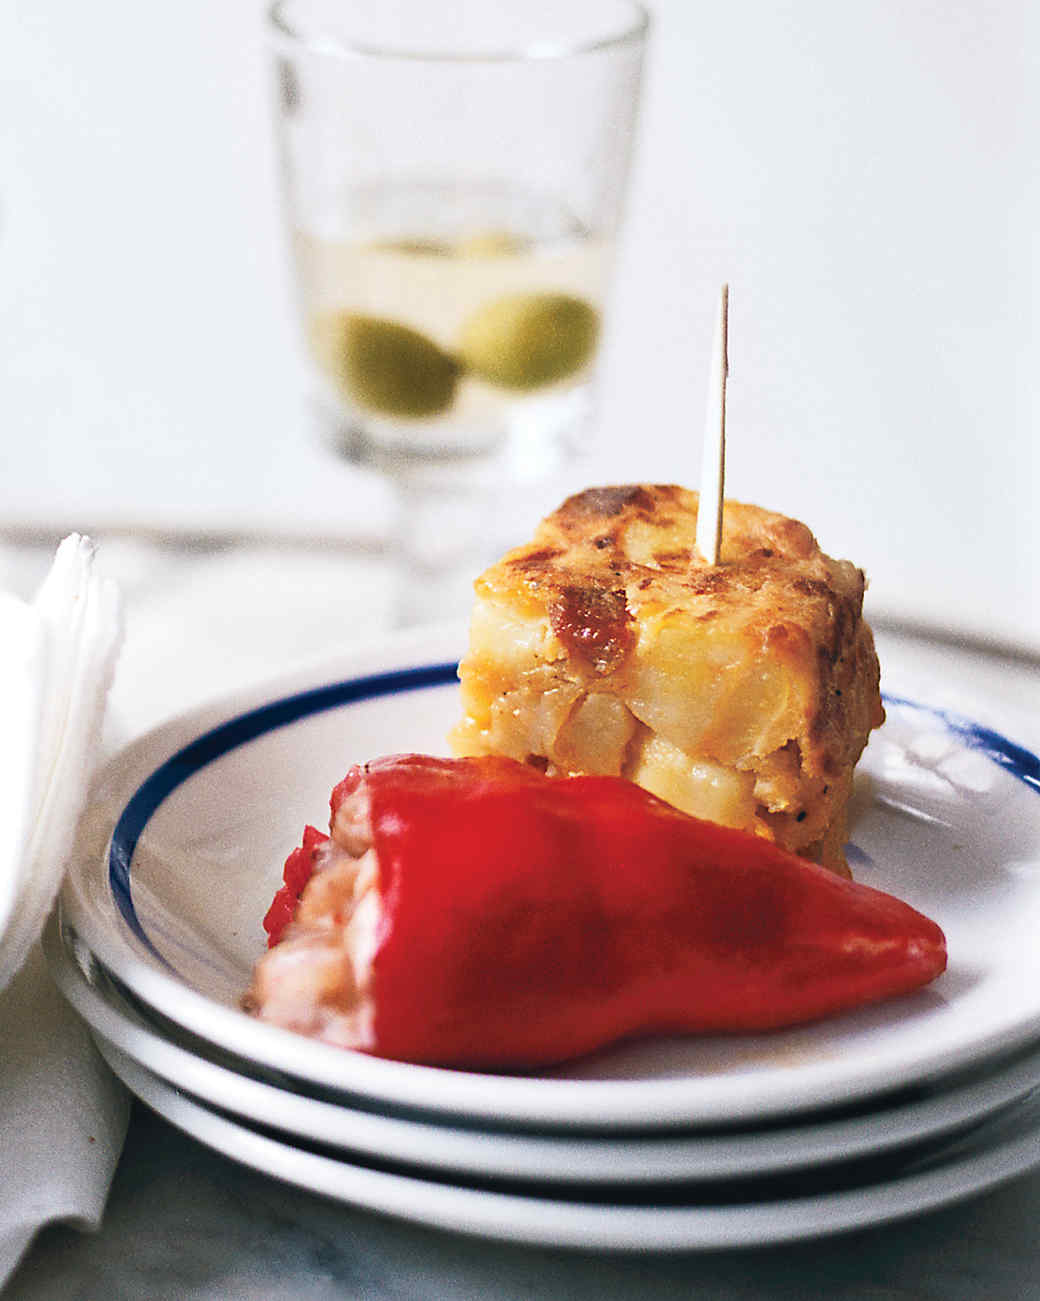 Tapas Dinner Party Ideas Part - 43: Piquillo Peppers Stuffed With Shrimp Salad